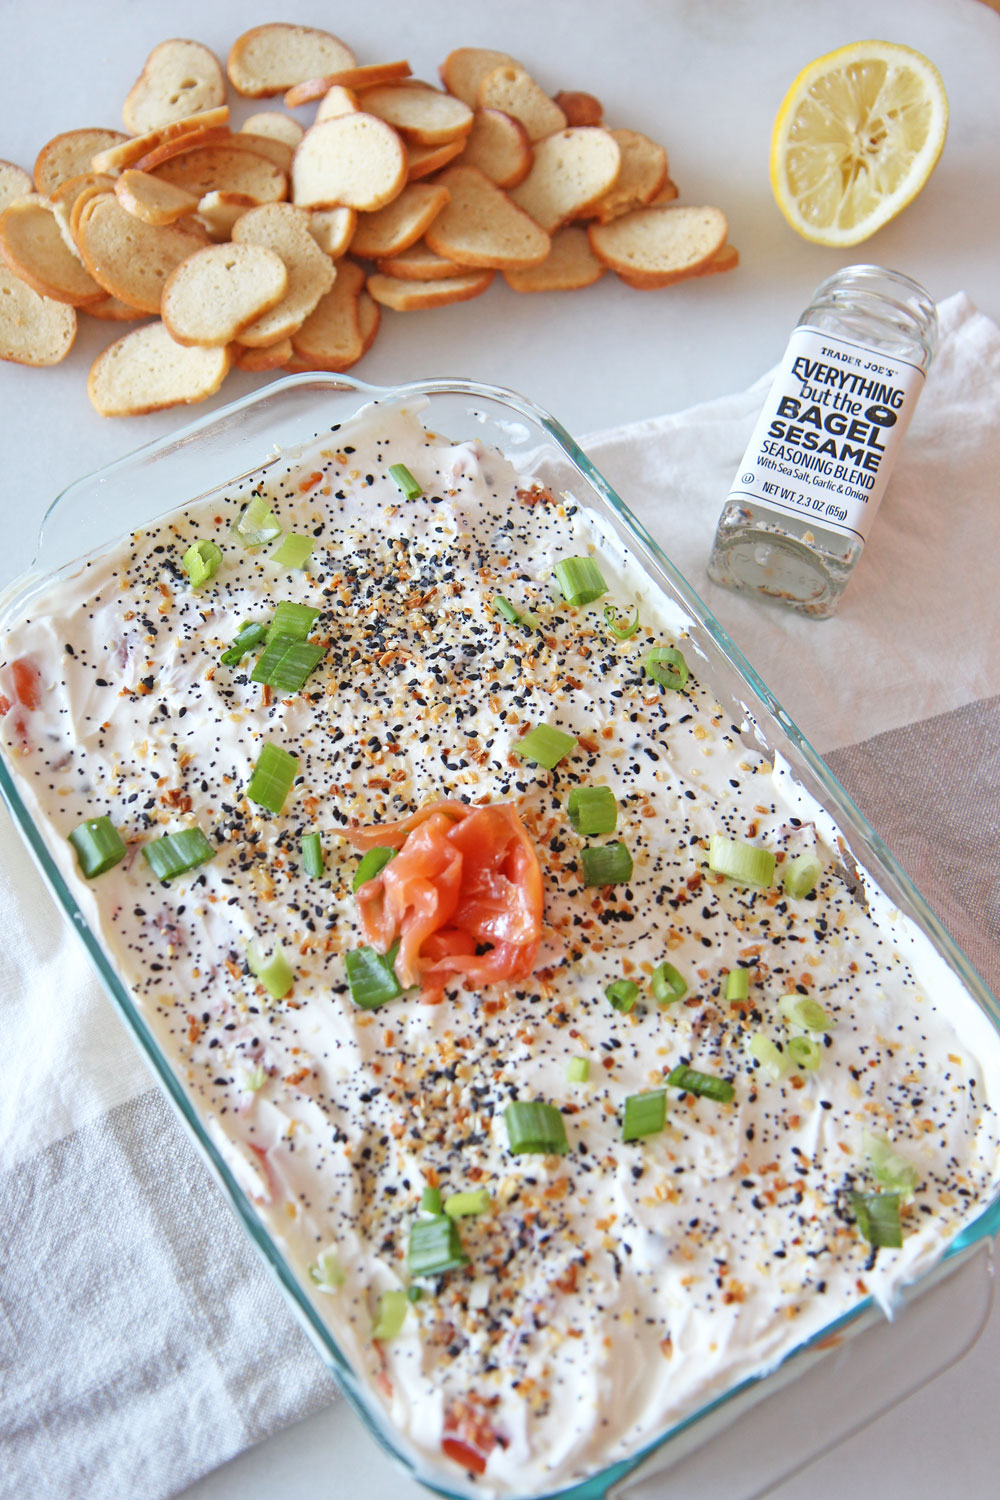 7 Layer Everything Bagel Dip Recipe. Perfect appetizer that tastes like a bagel and lox. Quick and easy starter that you can make a day in advance. Also a great host gift for the holidays. Happy Cooking! www.ChopHappy.com #everythingseasoning #7layerdip